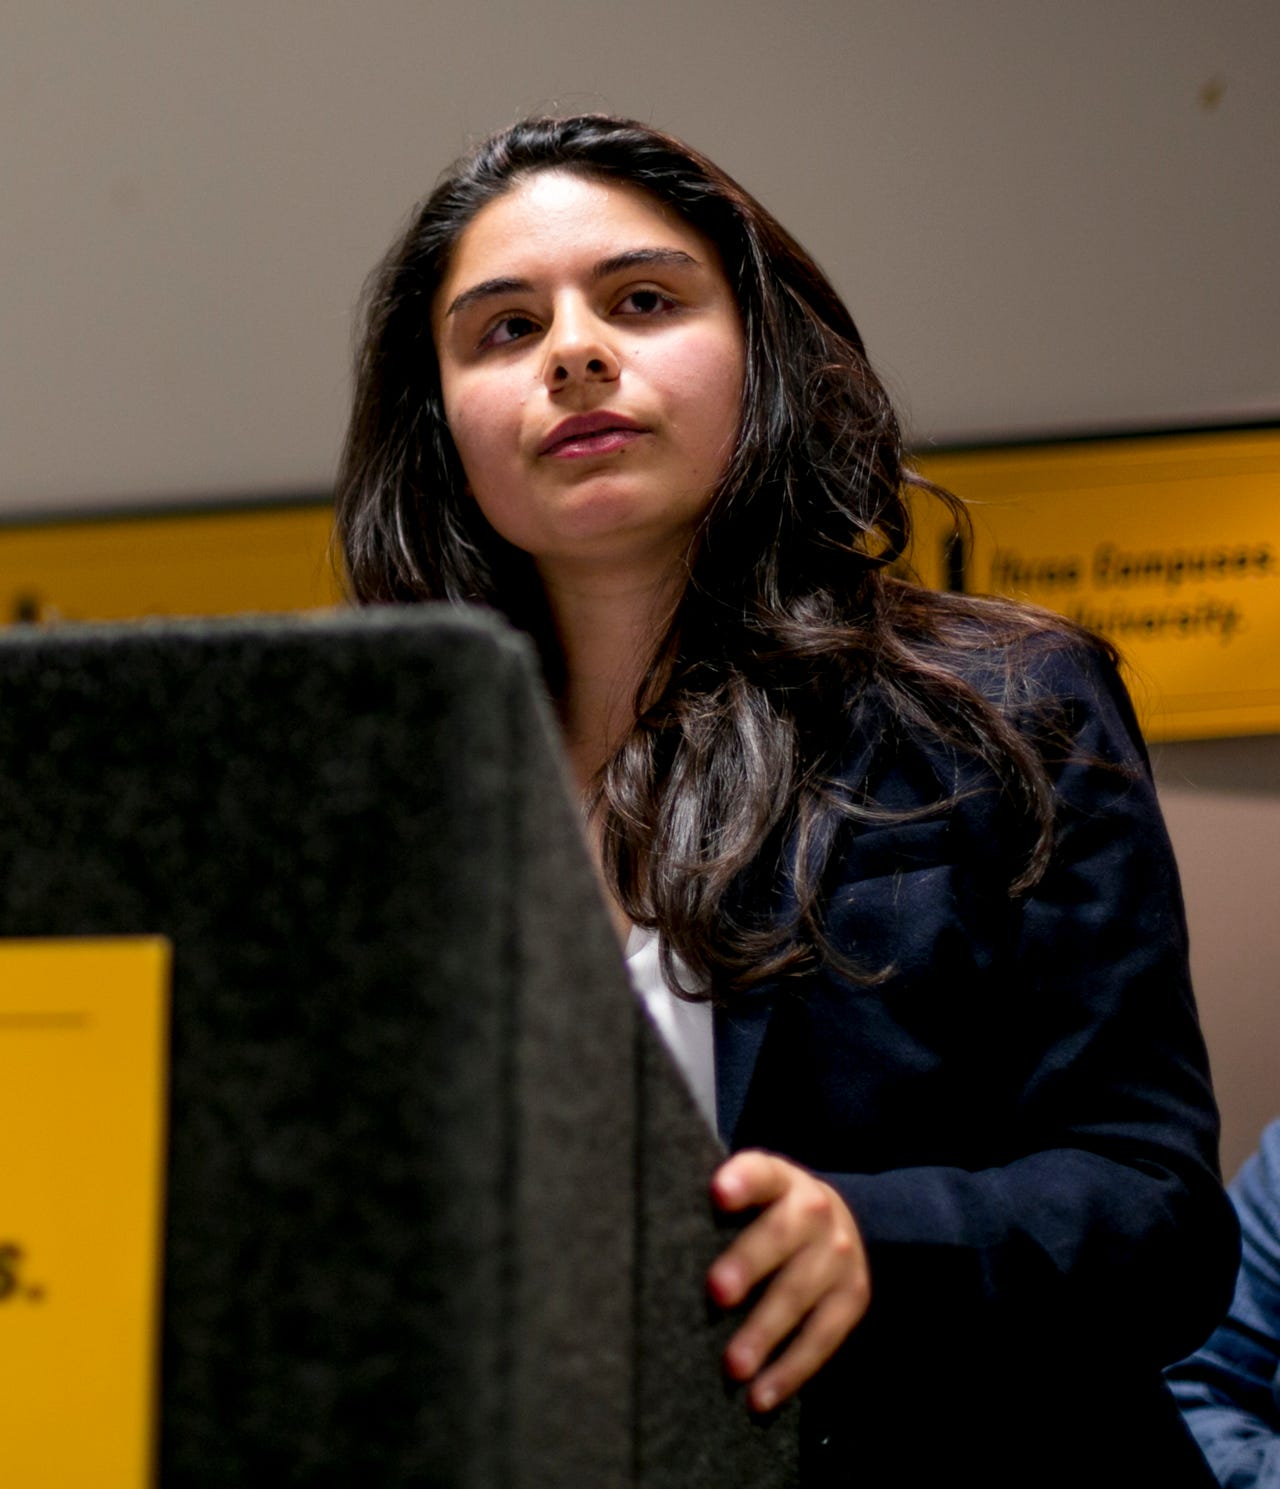 """UM-Flint and Dearborn students pay about 80 percent of Ann Arbor students' tuition, but receive 25 percent of per-student funding,"" said Amytess Girgis, a UM-Ann Arbor student, during the public comment portion of the meeting."